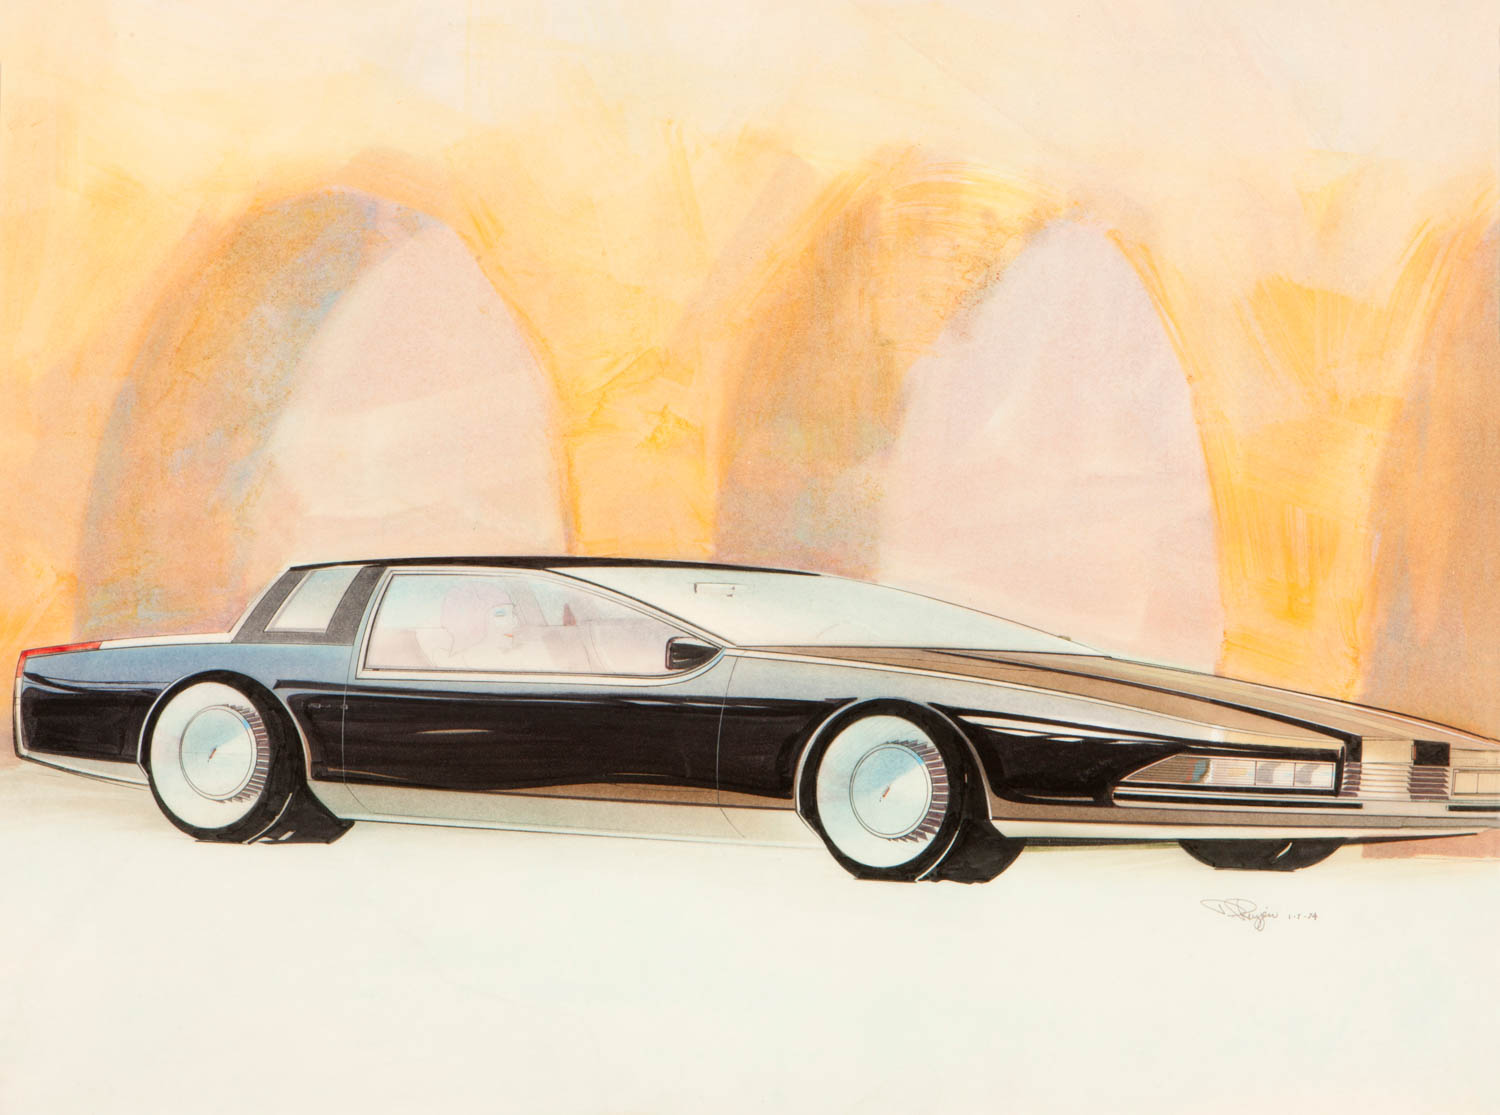 """""""This January 1972 sketch shows the arcades on Via Roma in Turin, Italy, with a proposed Olds Cutlass coupe. I was the chief of Advanced Oldsmobile Design, working with Tom Semple, Tom Matano, and Charlie Graefe. We sent a lot of inspiring work to the production Olds Studio."""""""